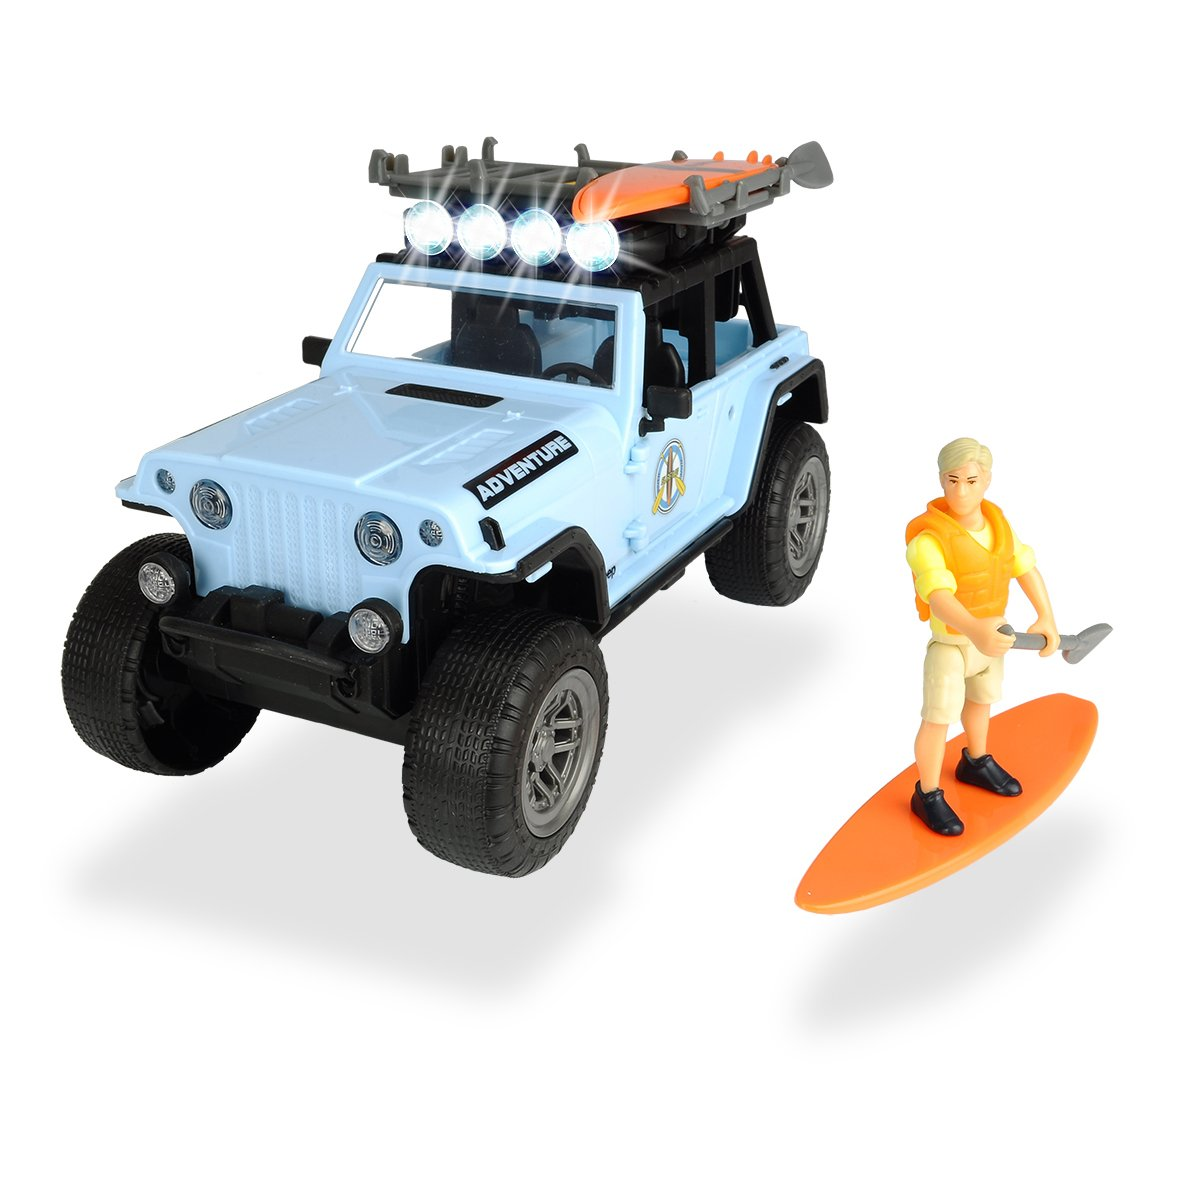 Set Masinuta Jeep cu figurina Dickie Playlife Surfer